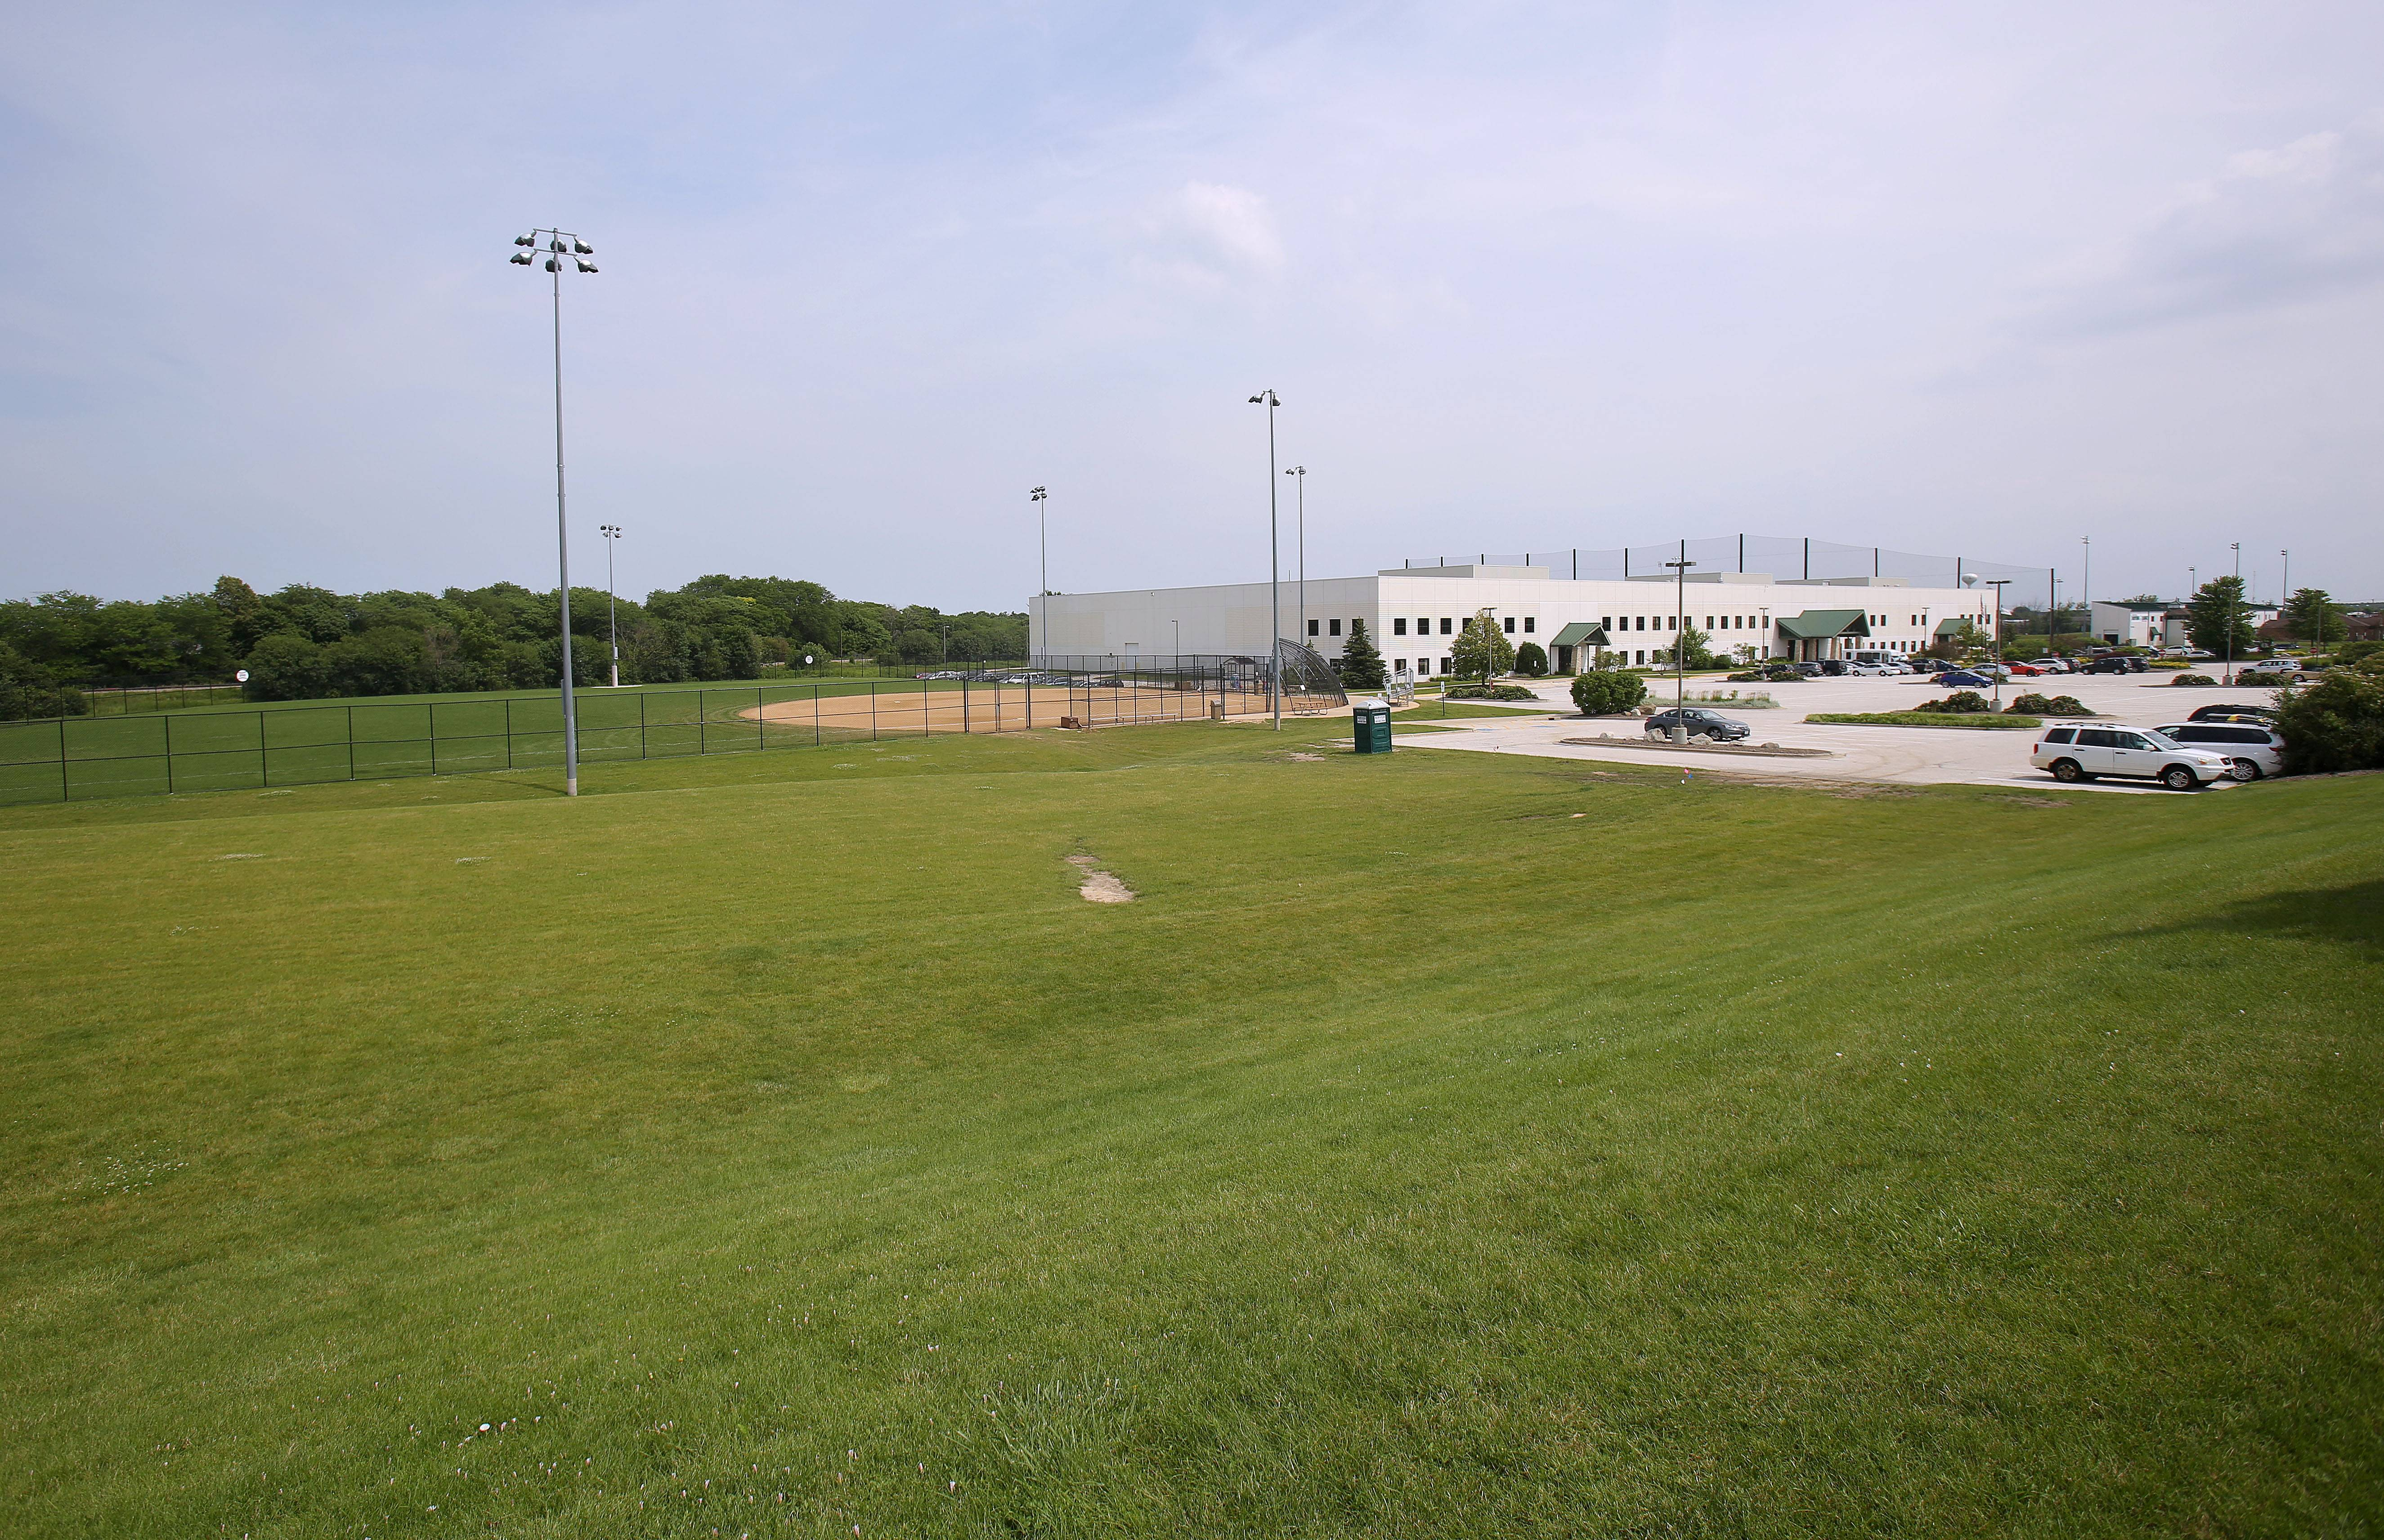 A hockey rink to replace one that was dismantled at the former Bolander Park will be built at the Libertyville Sports Complex. The village board last week approved a contract for $374K to build the rink, which will be located adjacent to the softball field.